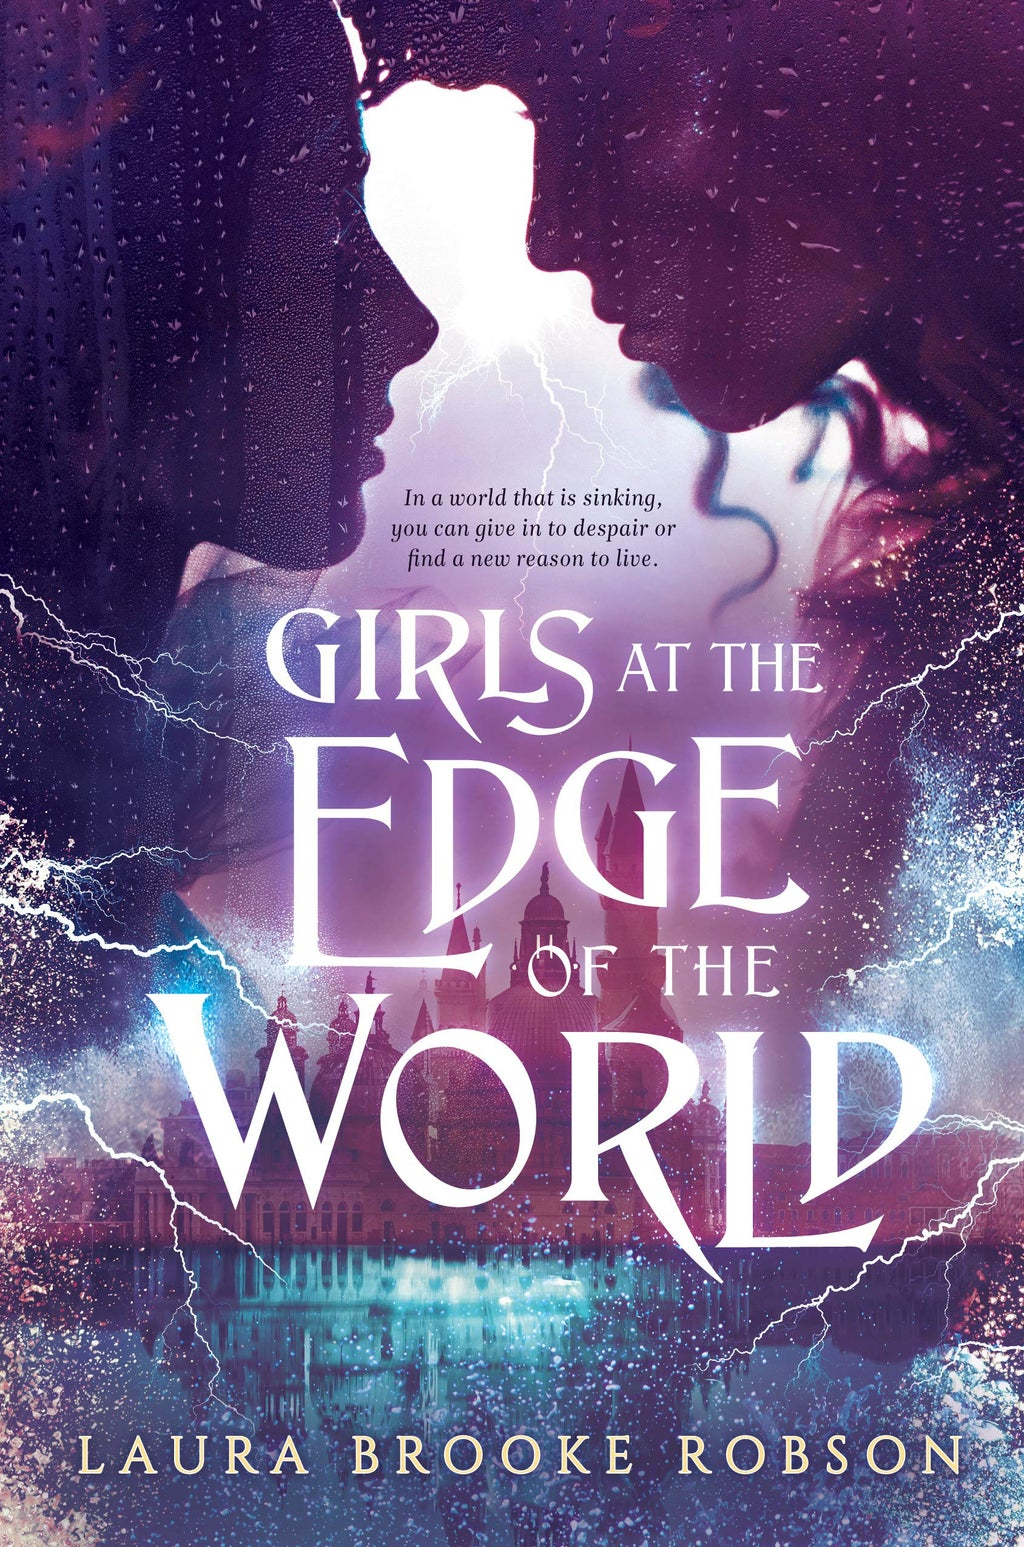 book cover of girls at the edge of the world by laura brook robson